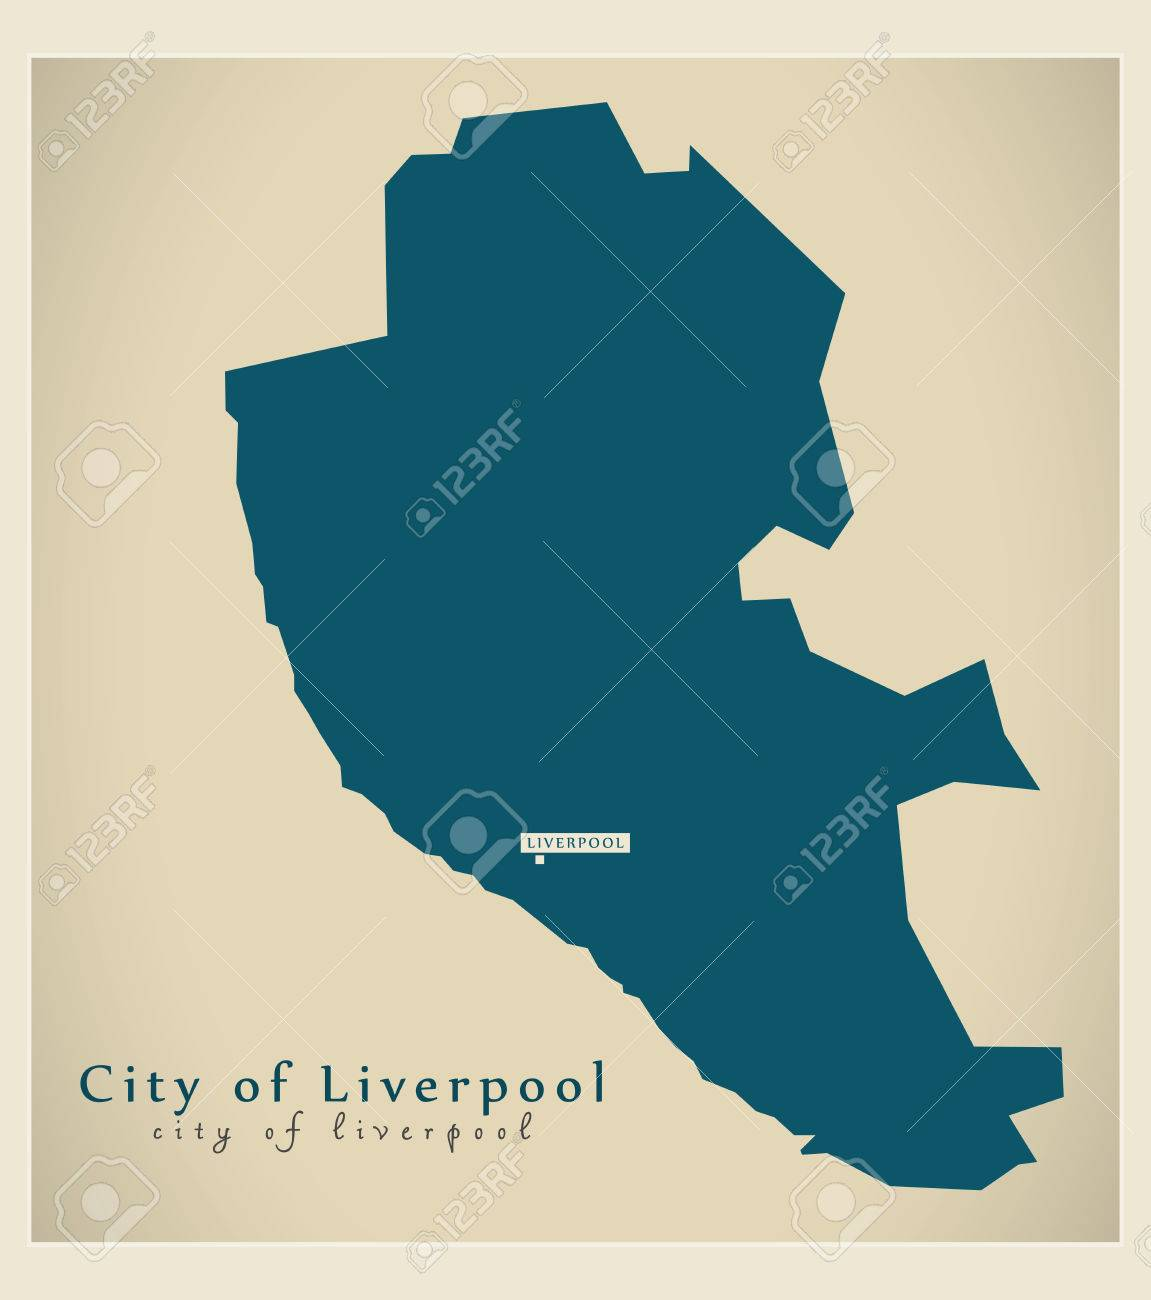 Modern map city of liverpool district of merseyside uk england modern map city of liverpool district of merseyside uk england stock vector 82518802 gumiabroncs Image collections